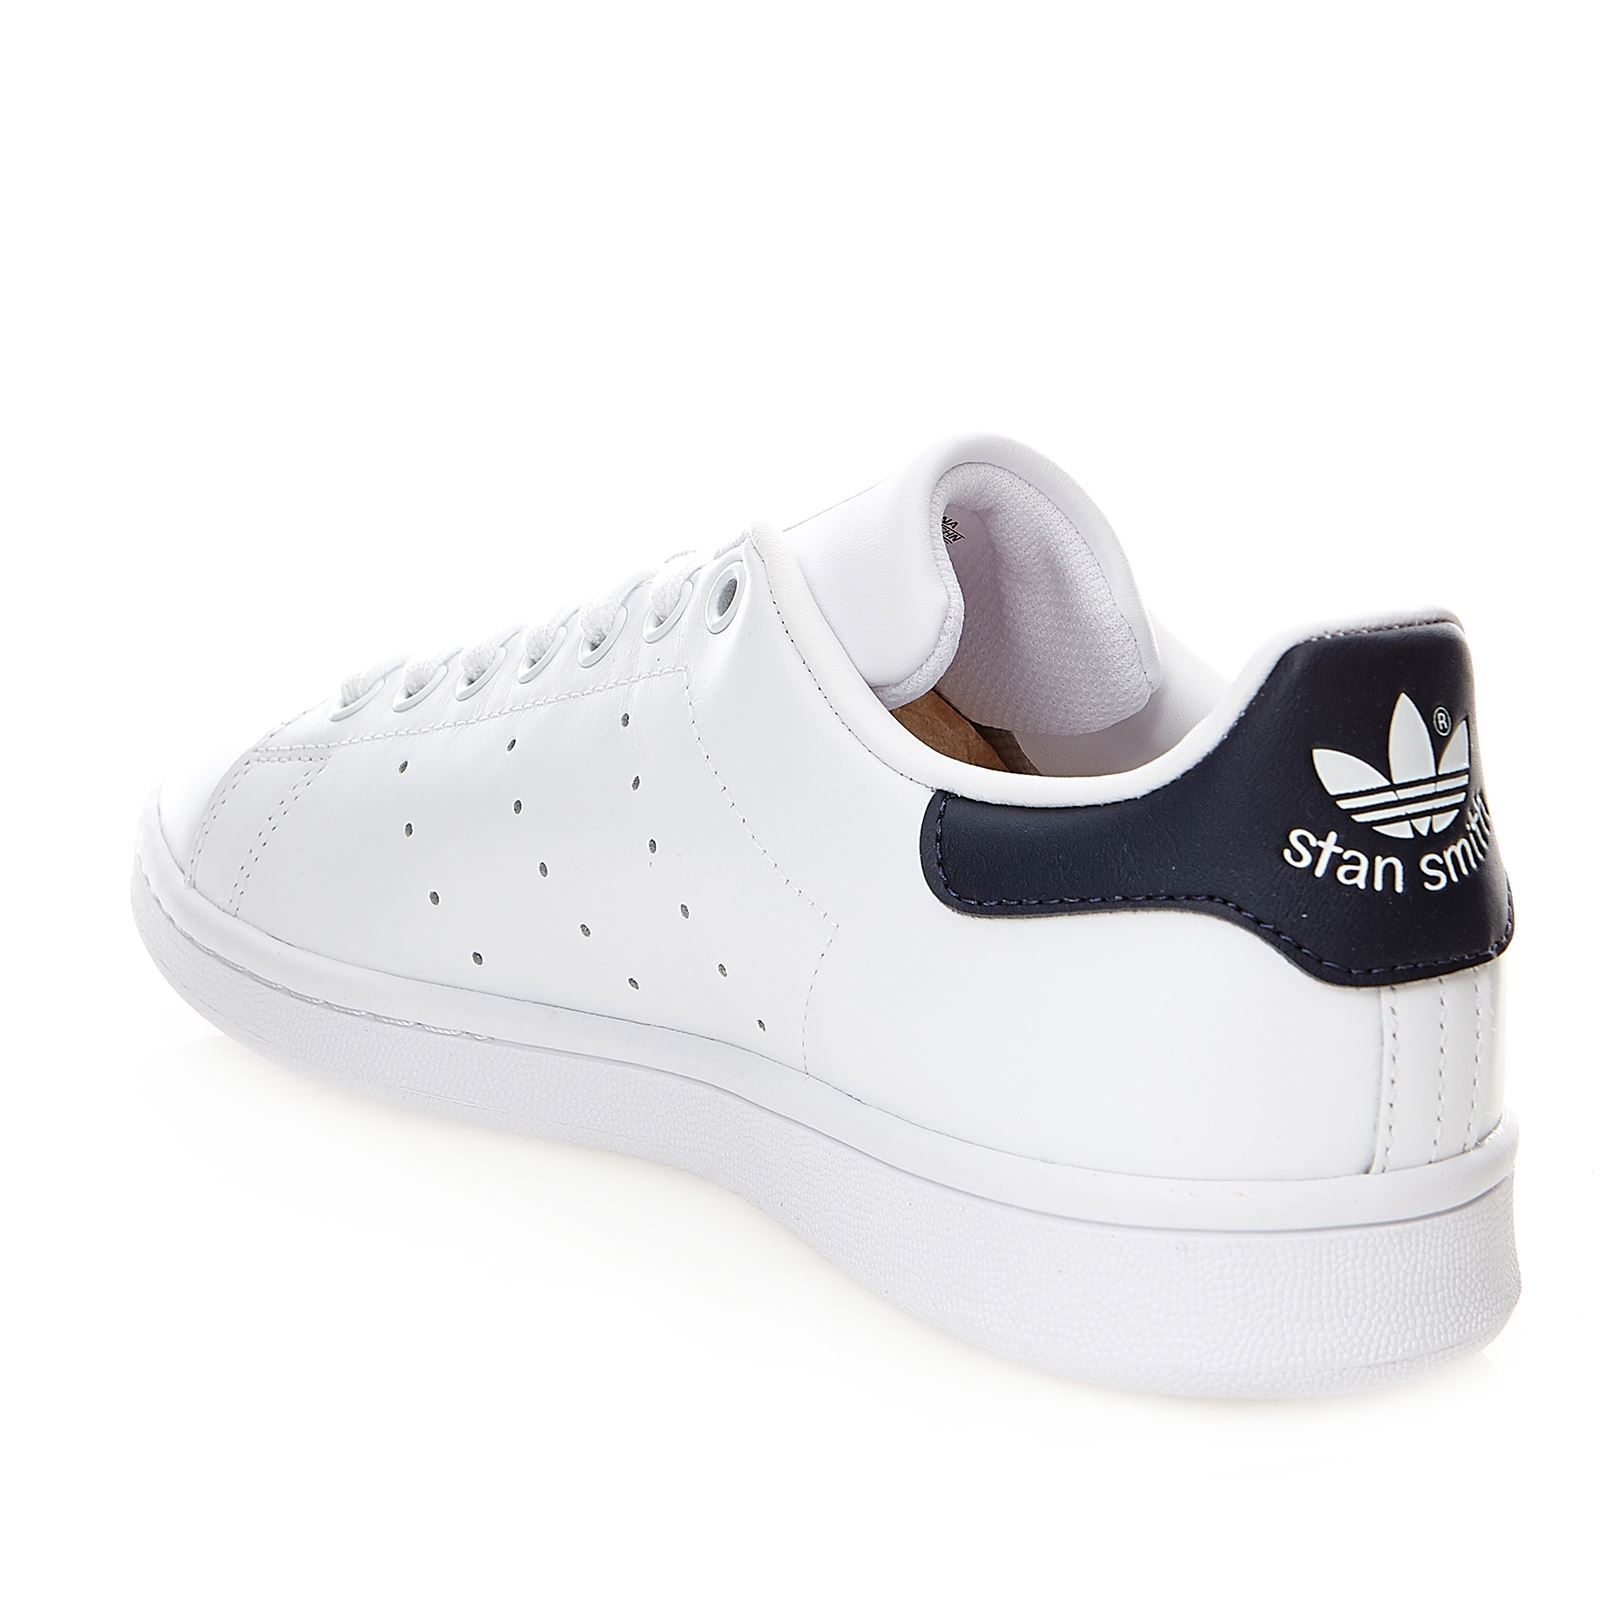 size 40 f2661 ef5d7 ADIDAS ORIGINALS Stan Smith - Baskets en cuir bi-matière - blanc